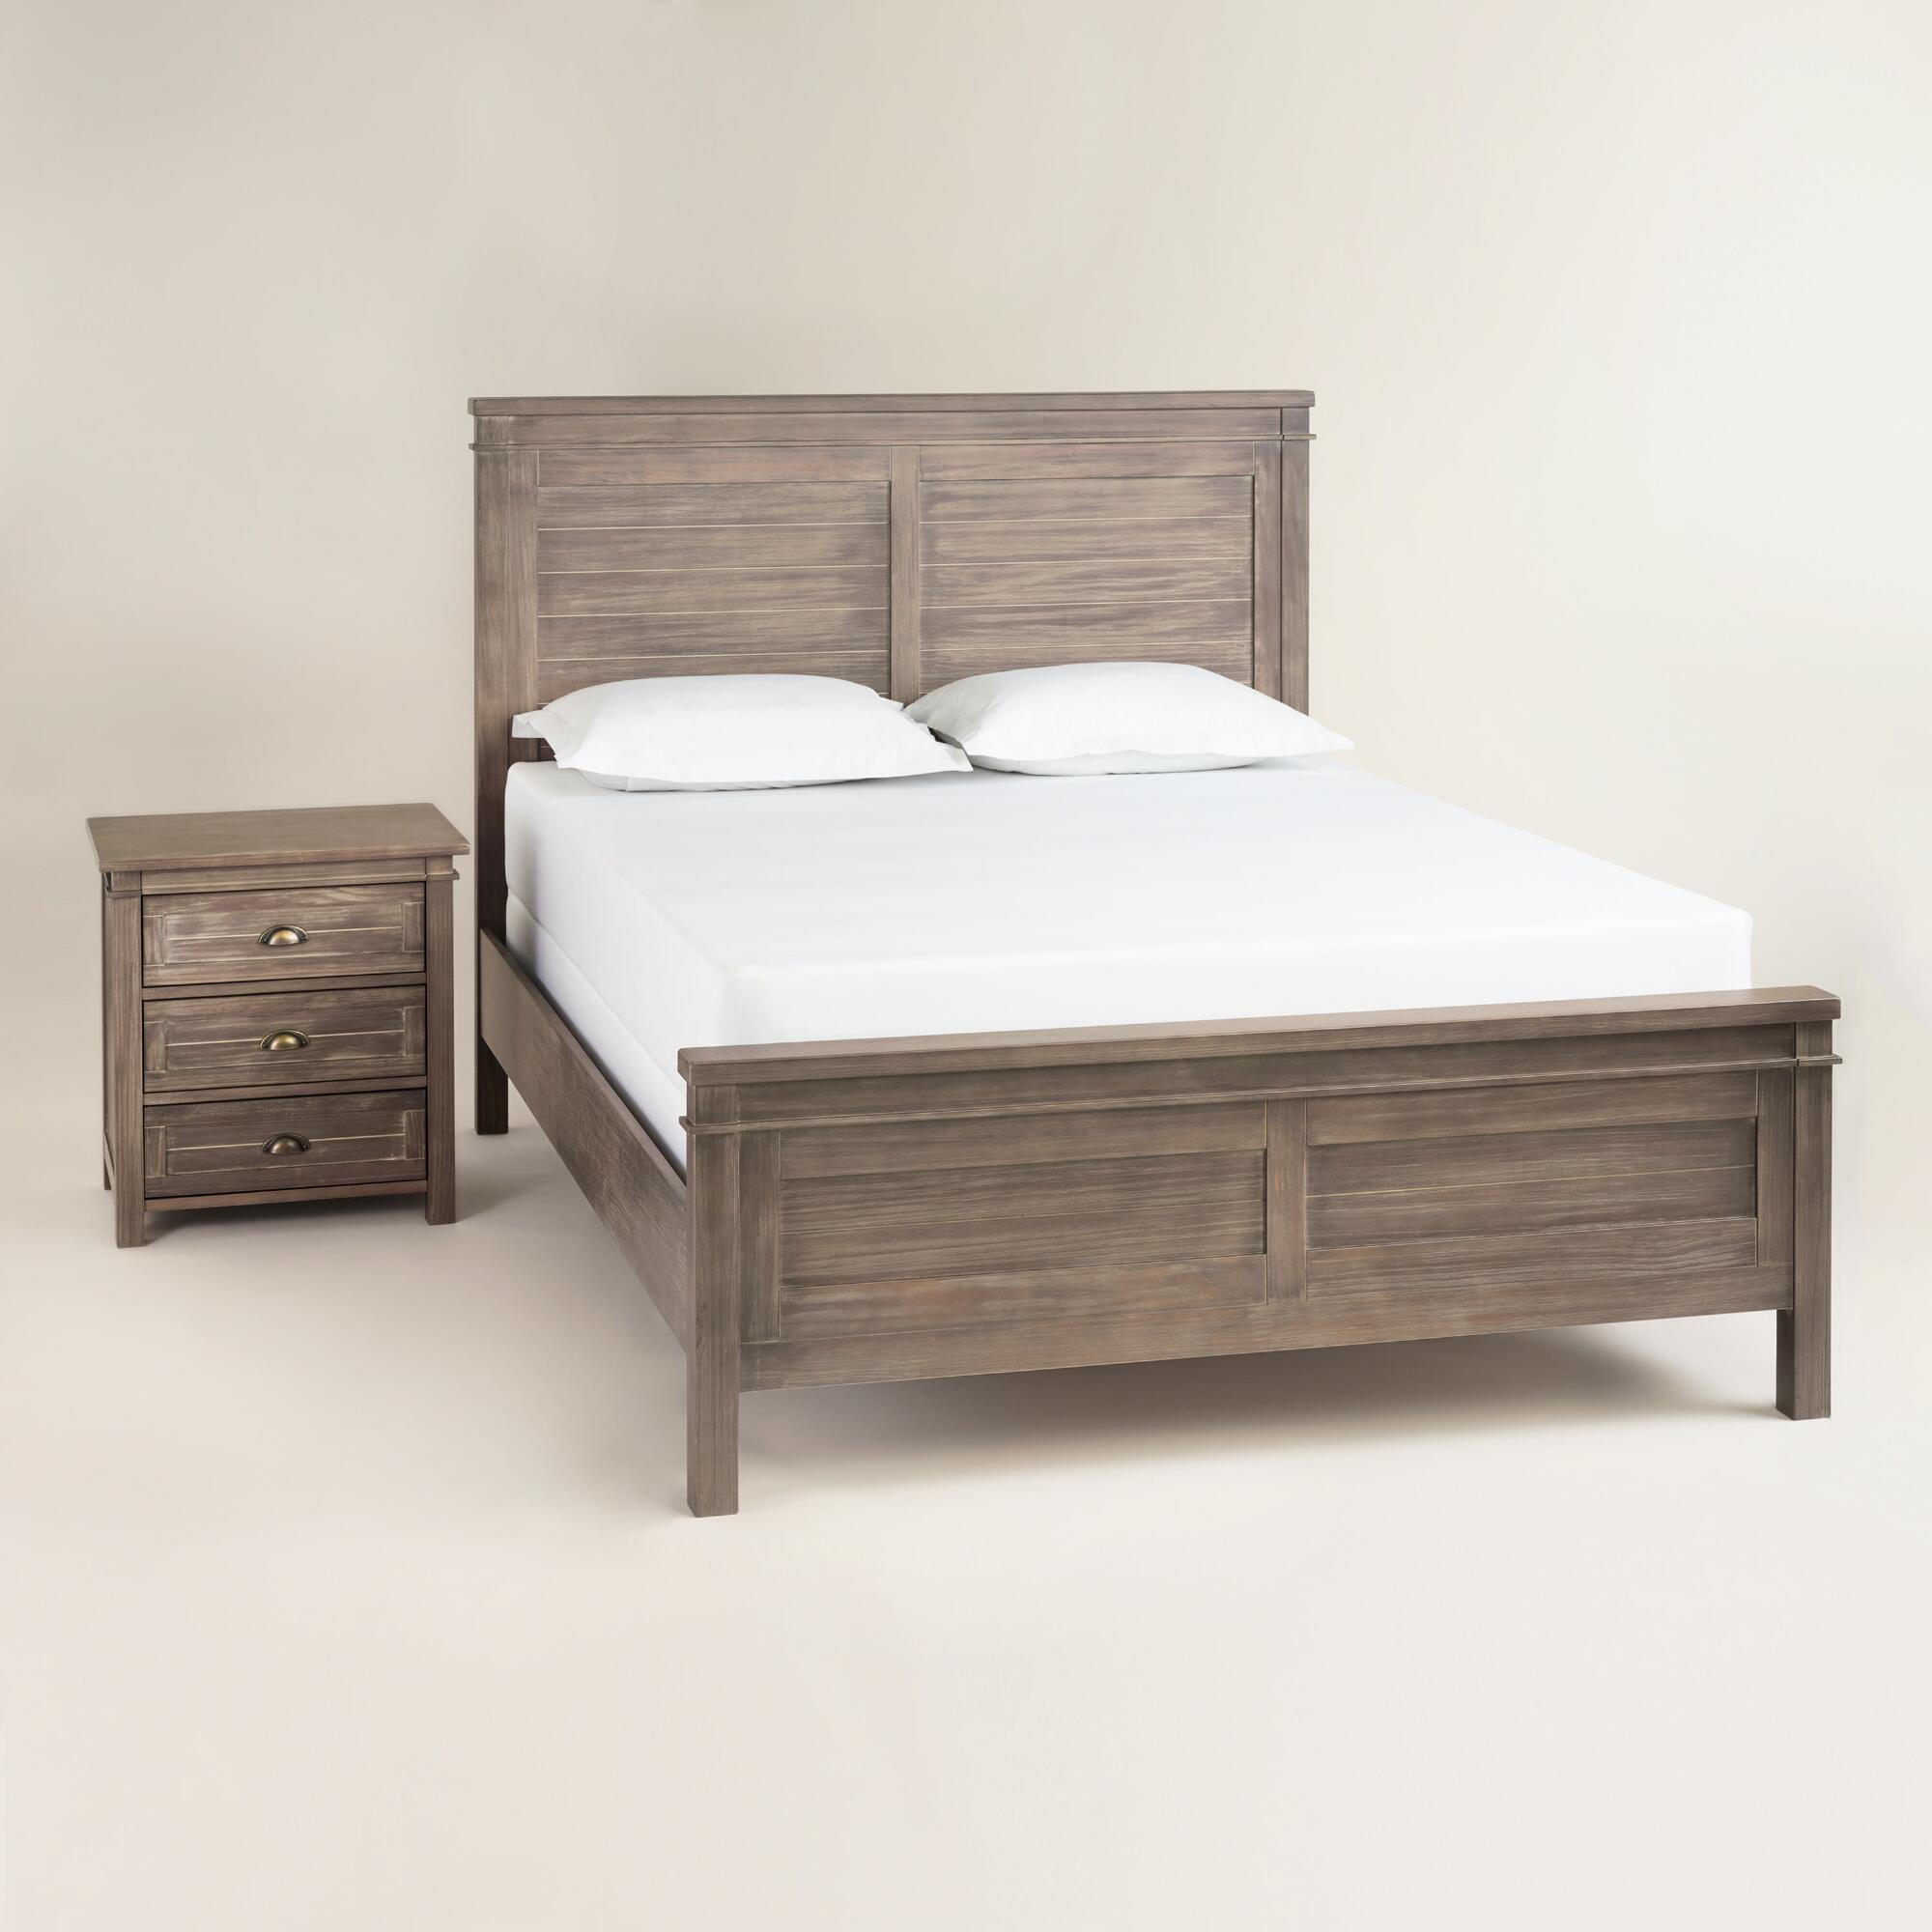 Bedroom Furniture World Bedroom Furniture Beds Dressers Nightstands